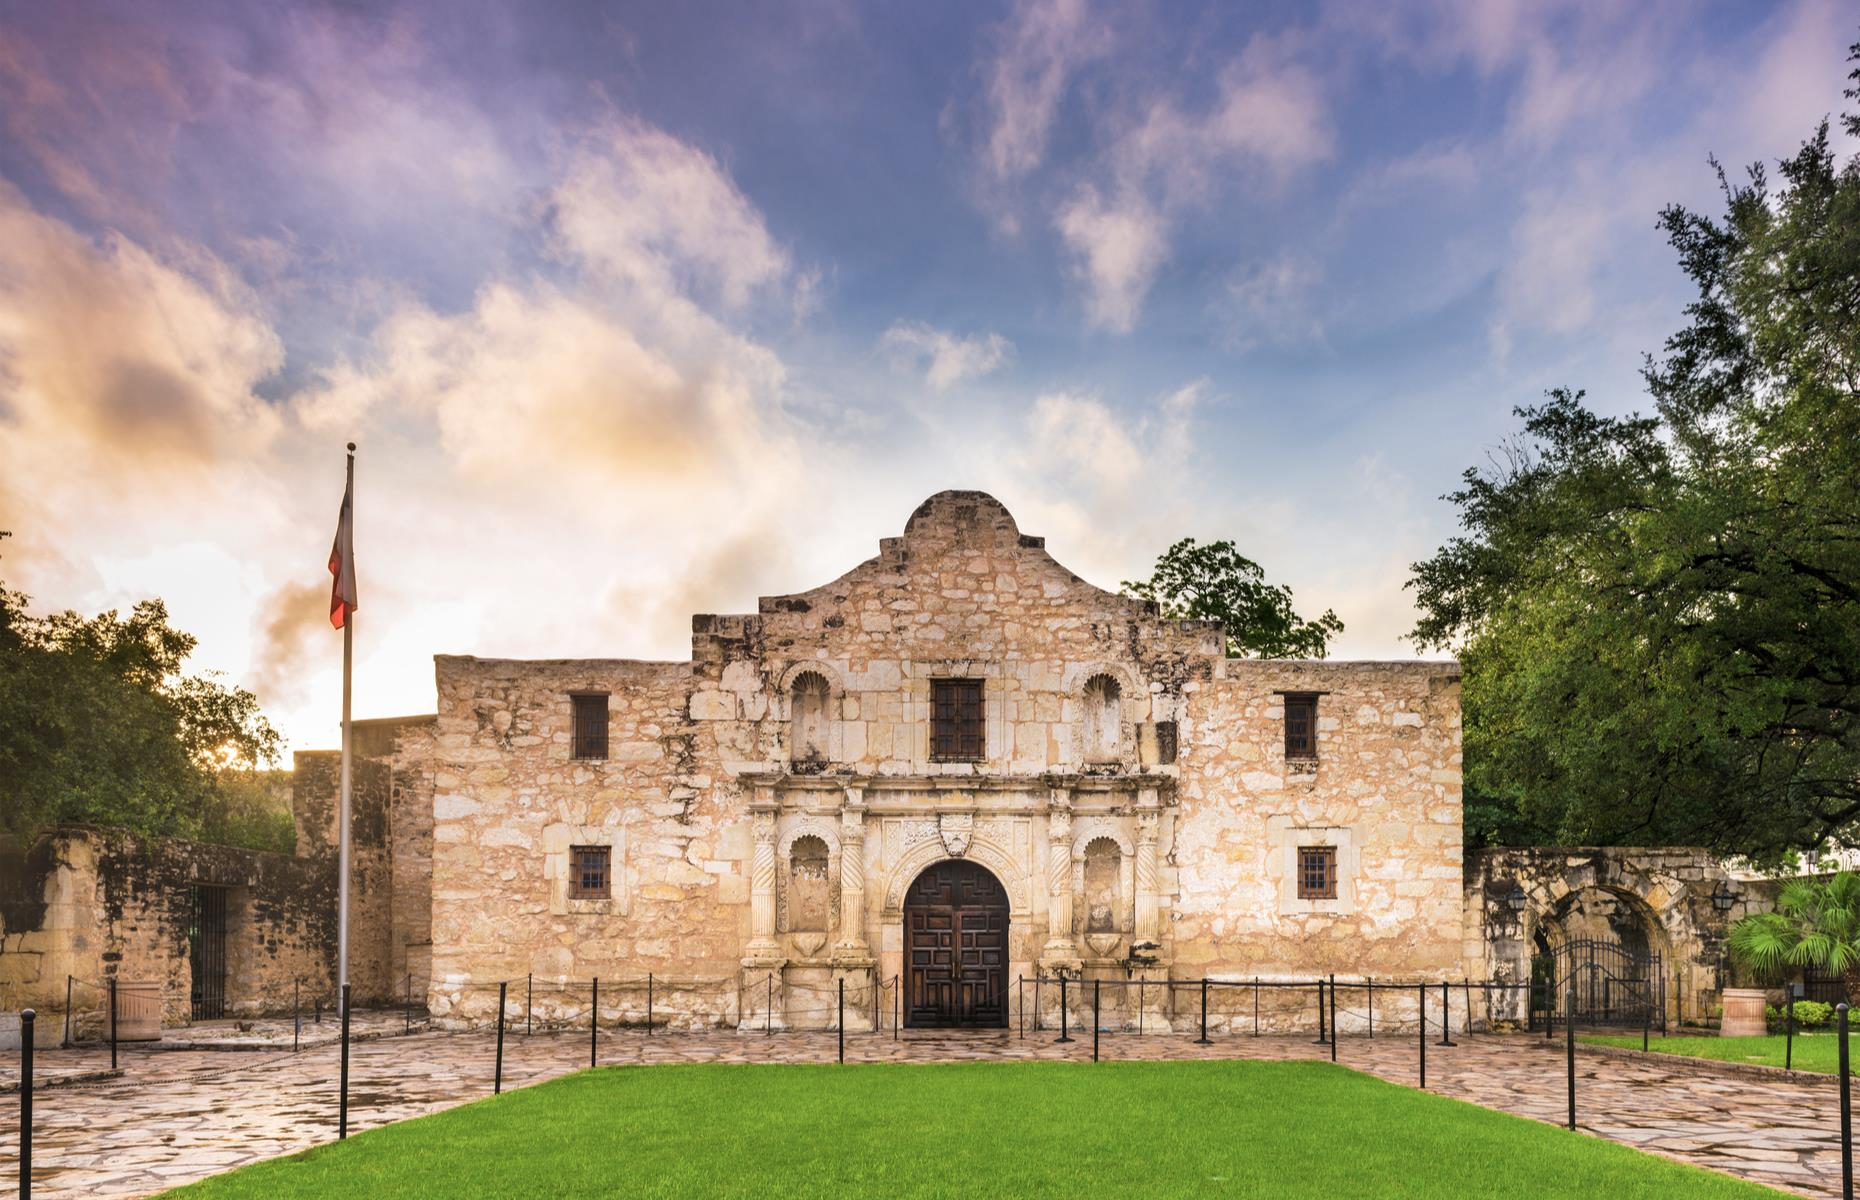 Slide 44 of 51: This mission in San Antonio is famous as the site of the 1836 Battle of the Alamo. Here Texans clashed with invading Mexicans during the Texas revolution, in a cross swords that would last almost two weeks. Today it's a preserved historic site and education center, bringing to life this pivotal battle, and remains one of the most-visited attractions in the state. You'll need a free timed ticket to go inside the church itself.